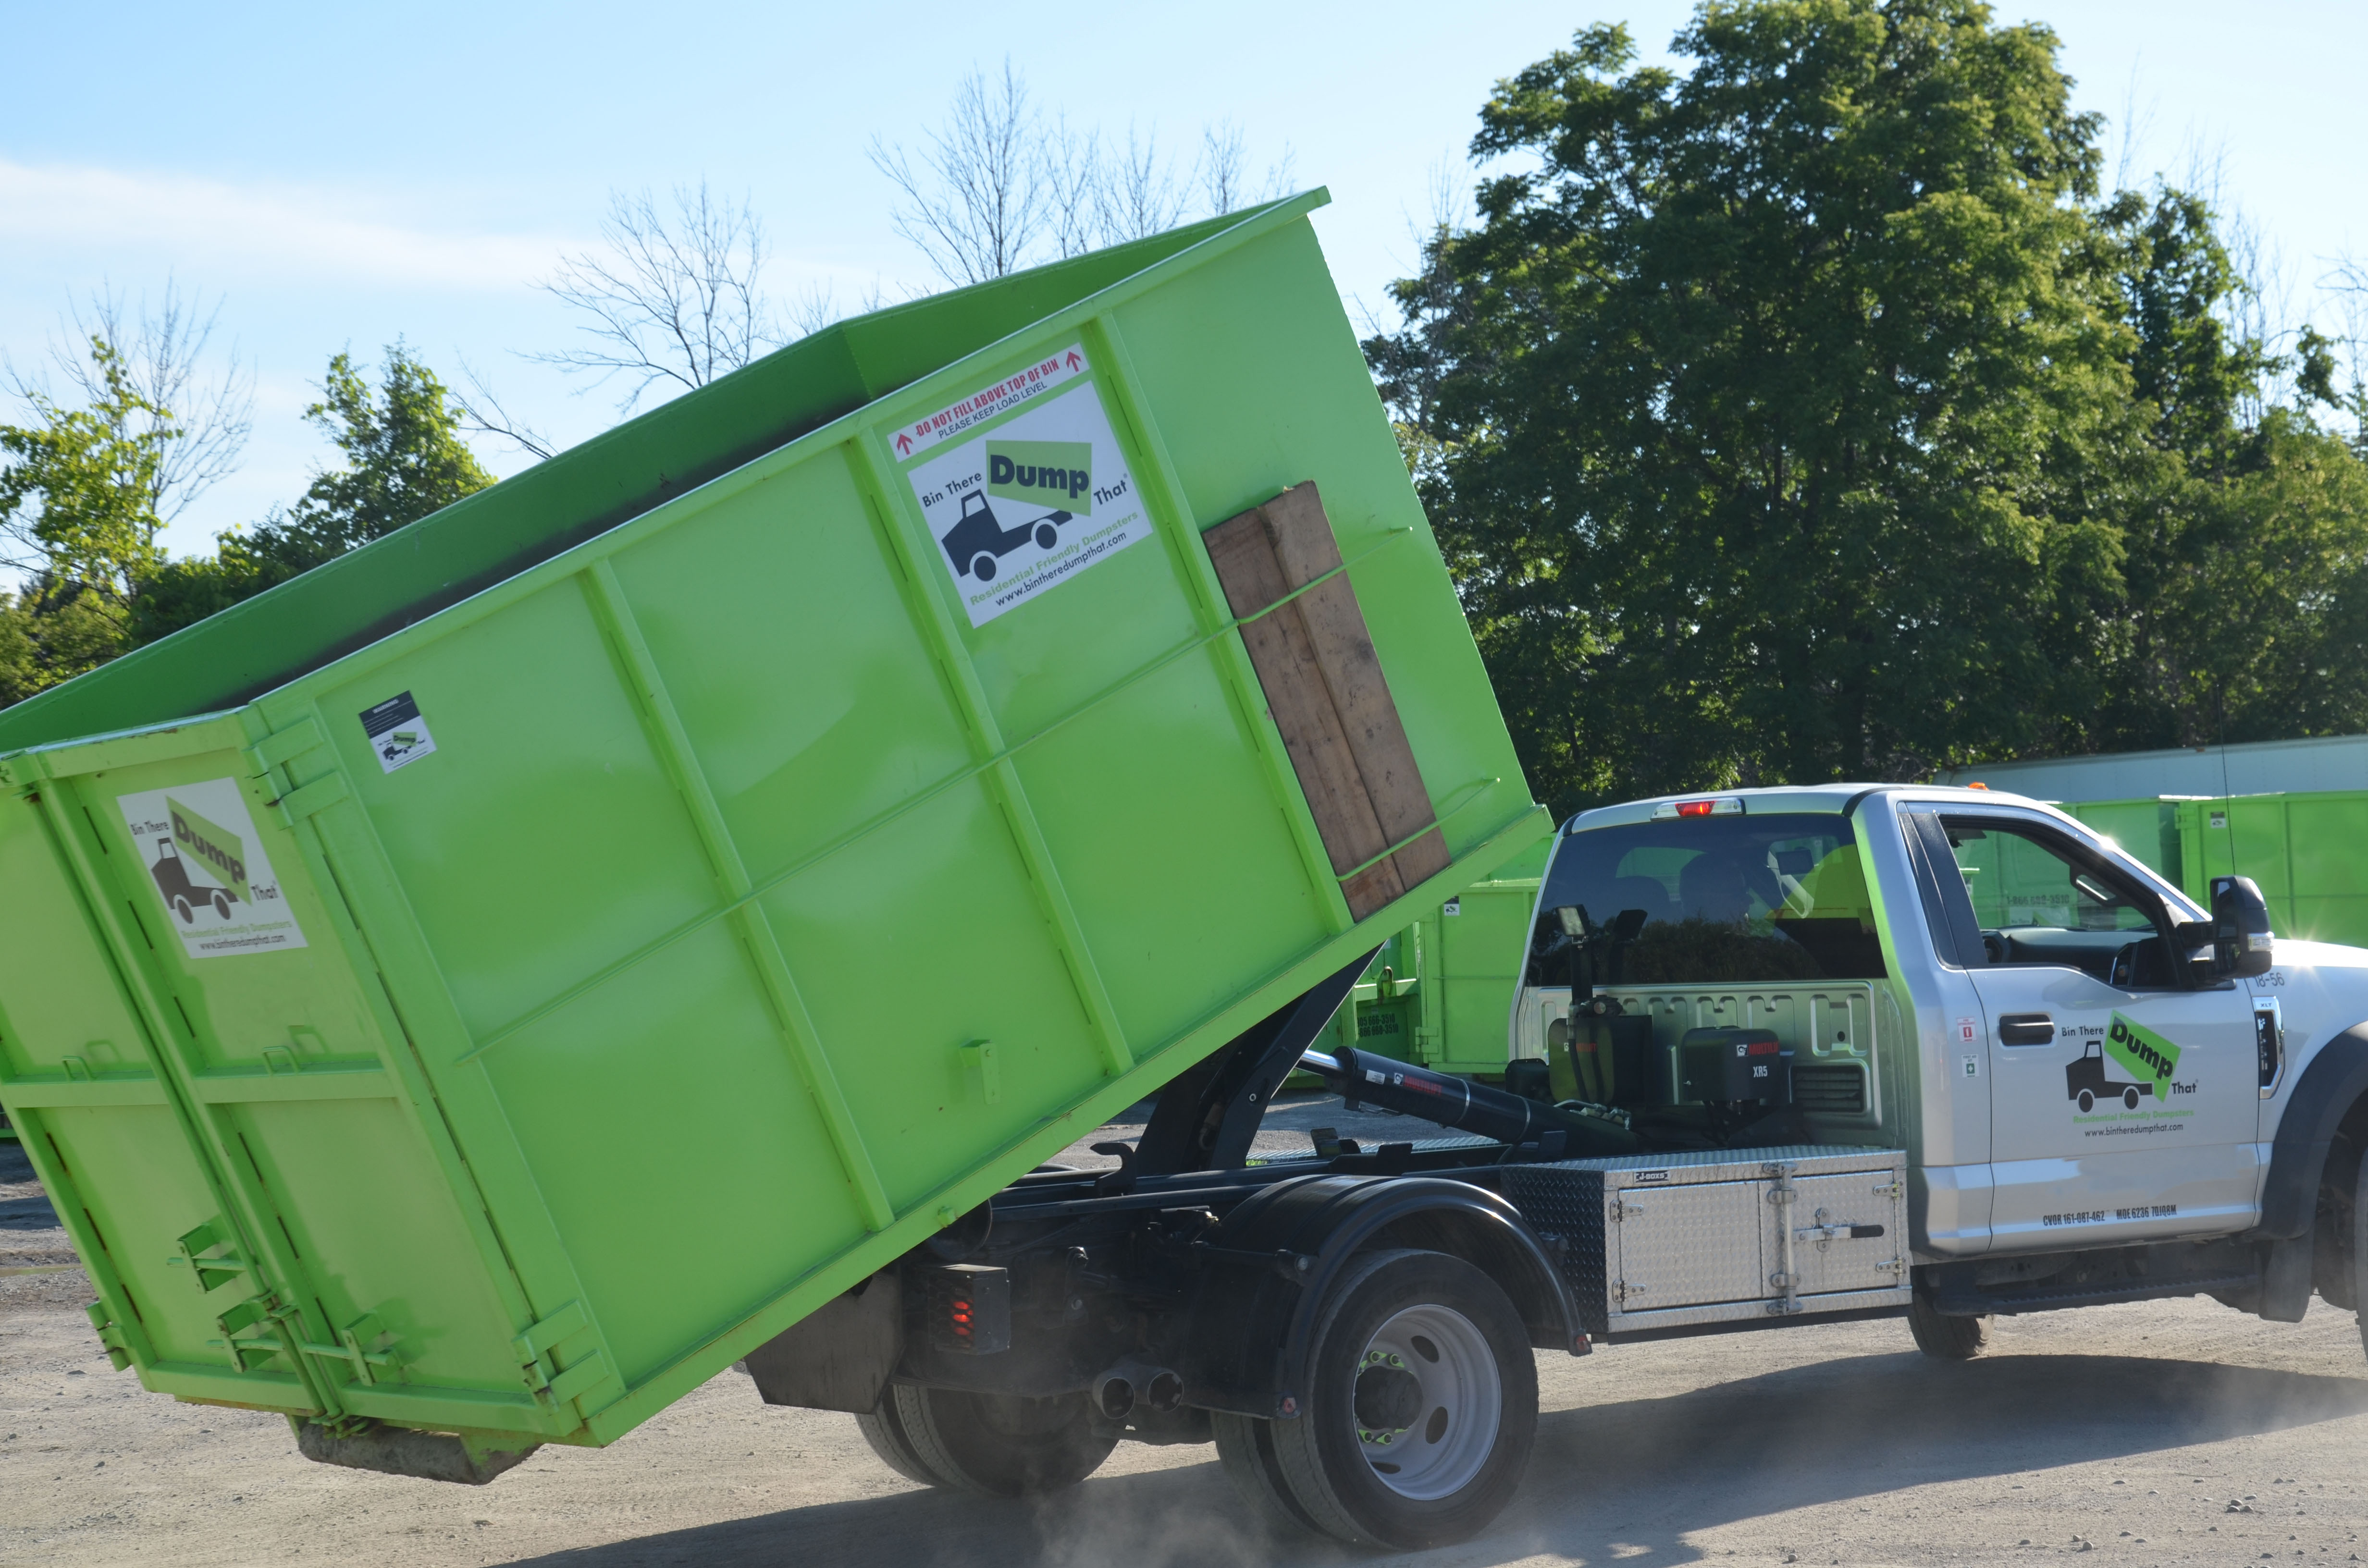 20 yard dumpster and bin there dump that truck